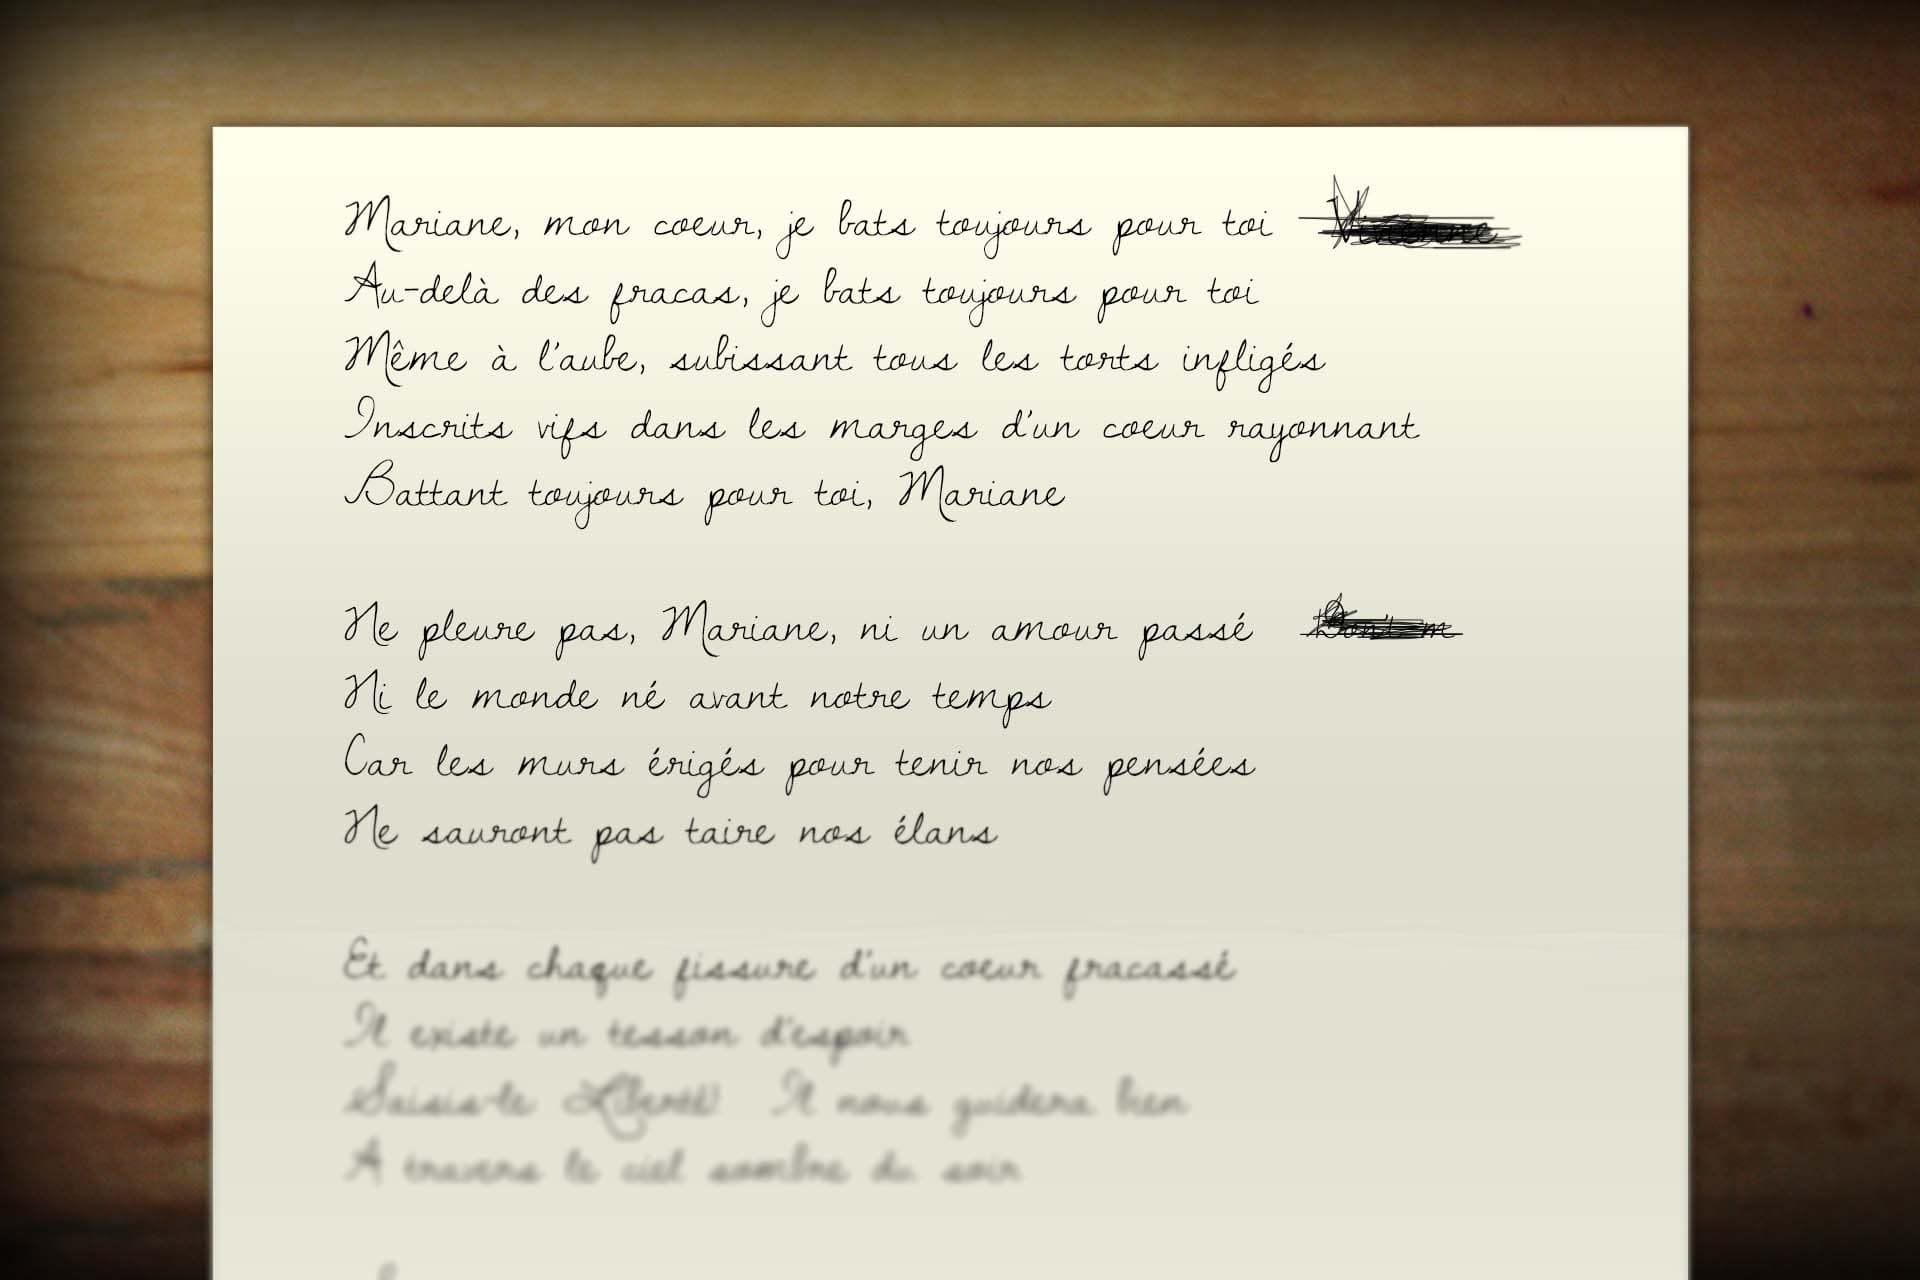 Propaganda was converted to the language of the region. As this poem was to be dropped over Paris, it was translated to French.